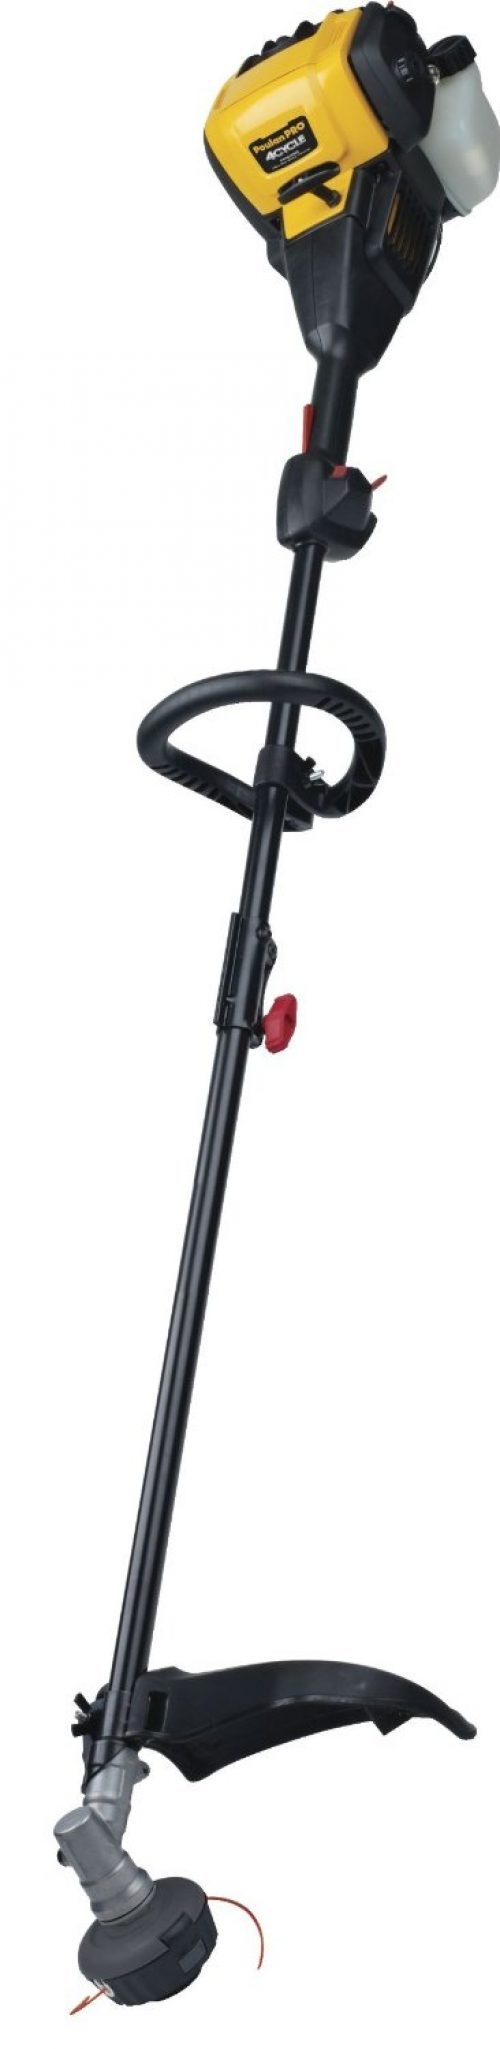 Poulan Pro 966774301 4-Cycle Gas Straight Shaft Trimmer